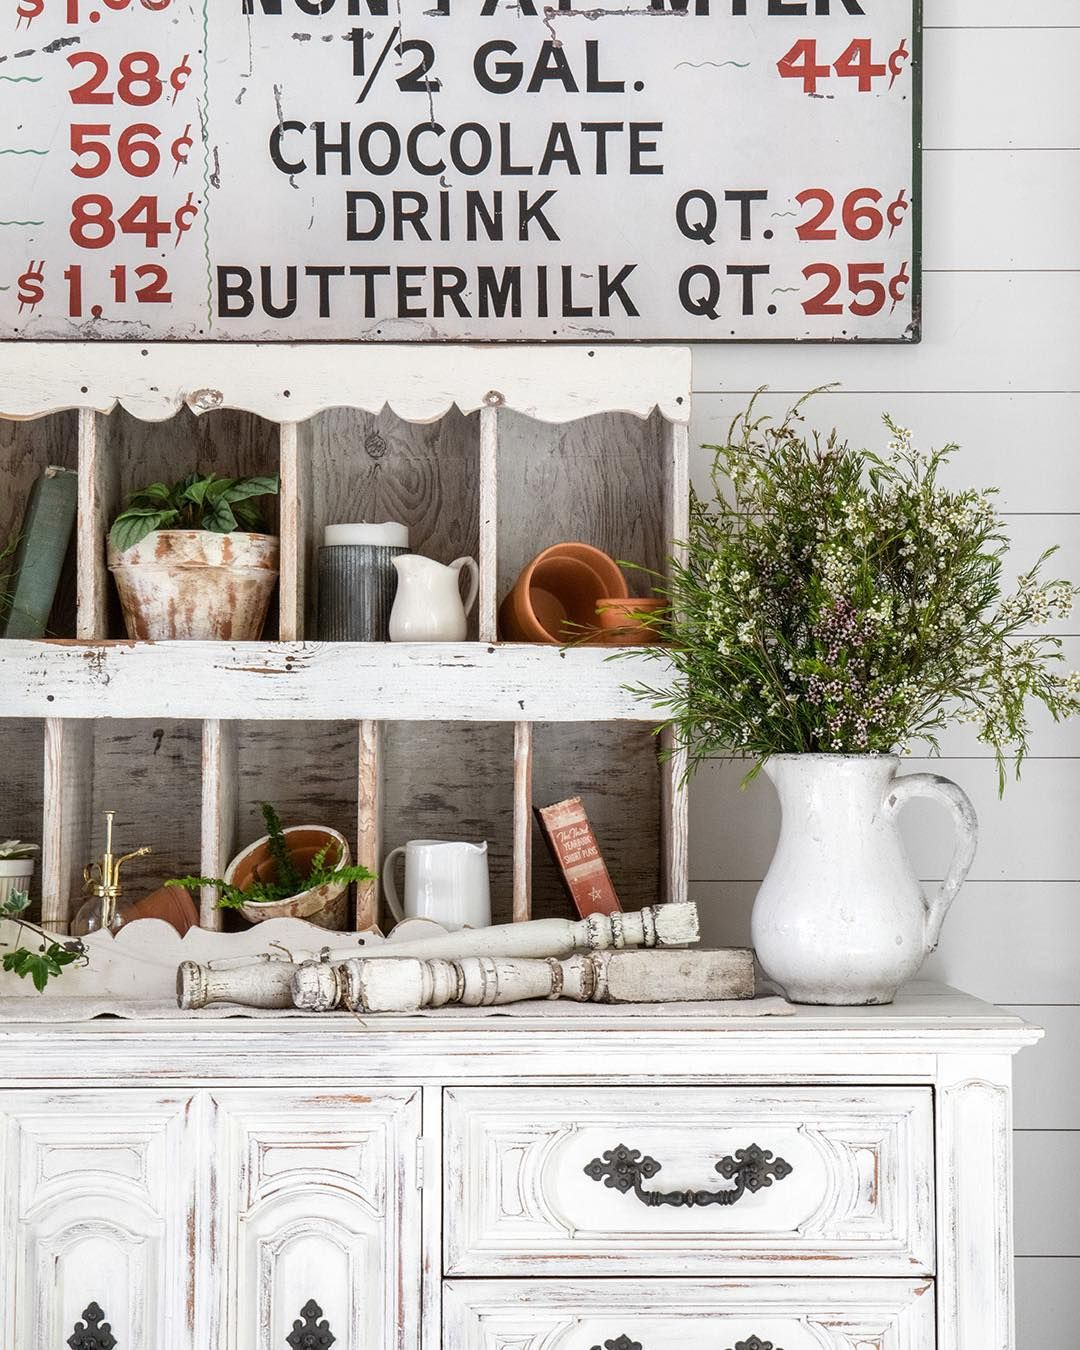 American Farmhouse Style On Instagram Did You Know That We Have Digital Subscriptions The Magazine Is Great In 2020 Farmhouse Style American Farmhouse Country Decor